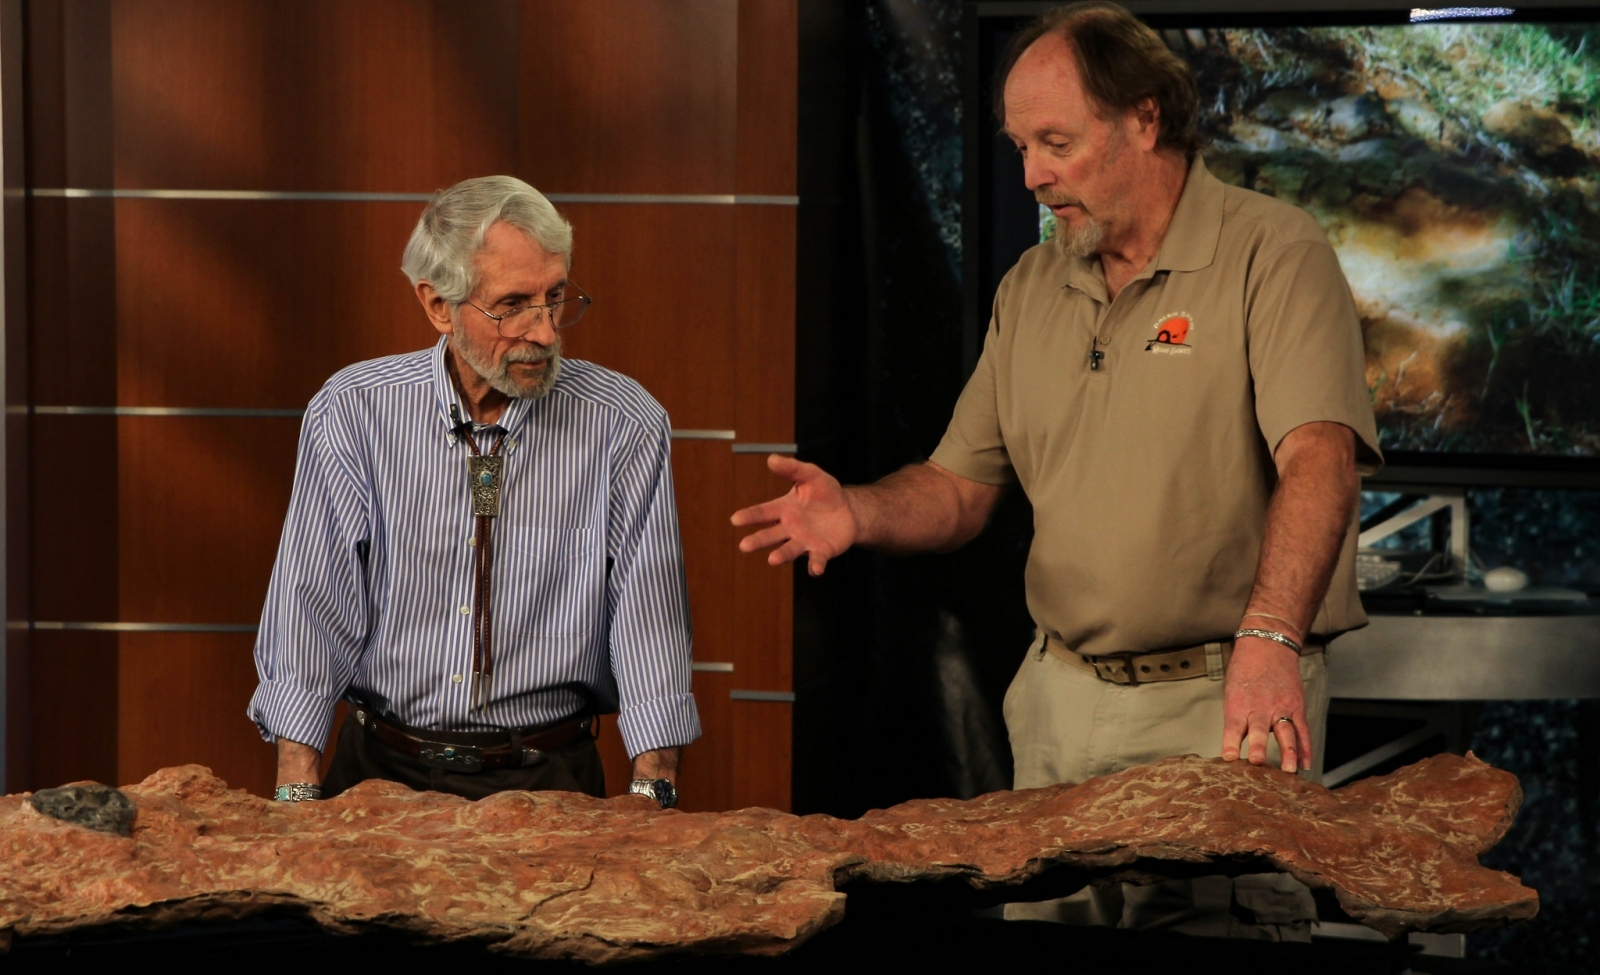 NASA Goddard Makes Discovery of Dinosaur Tracks Behind Its Building